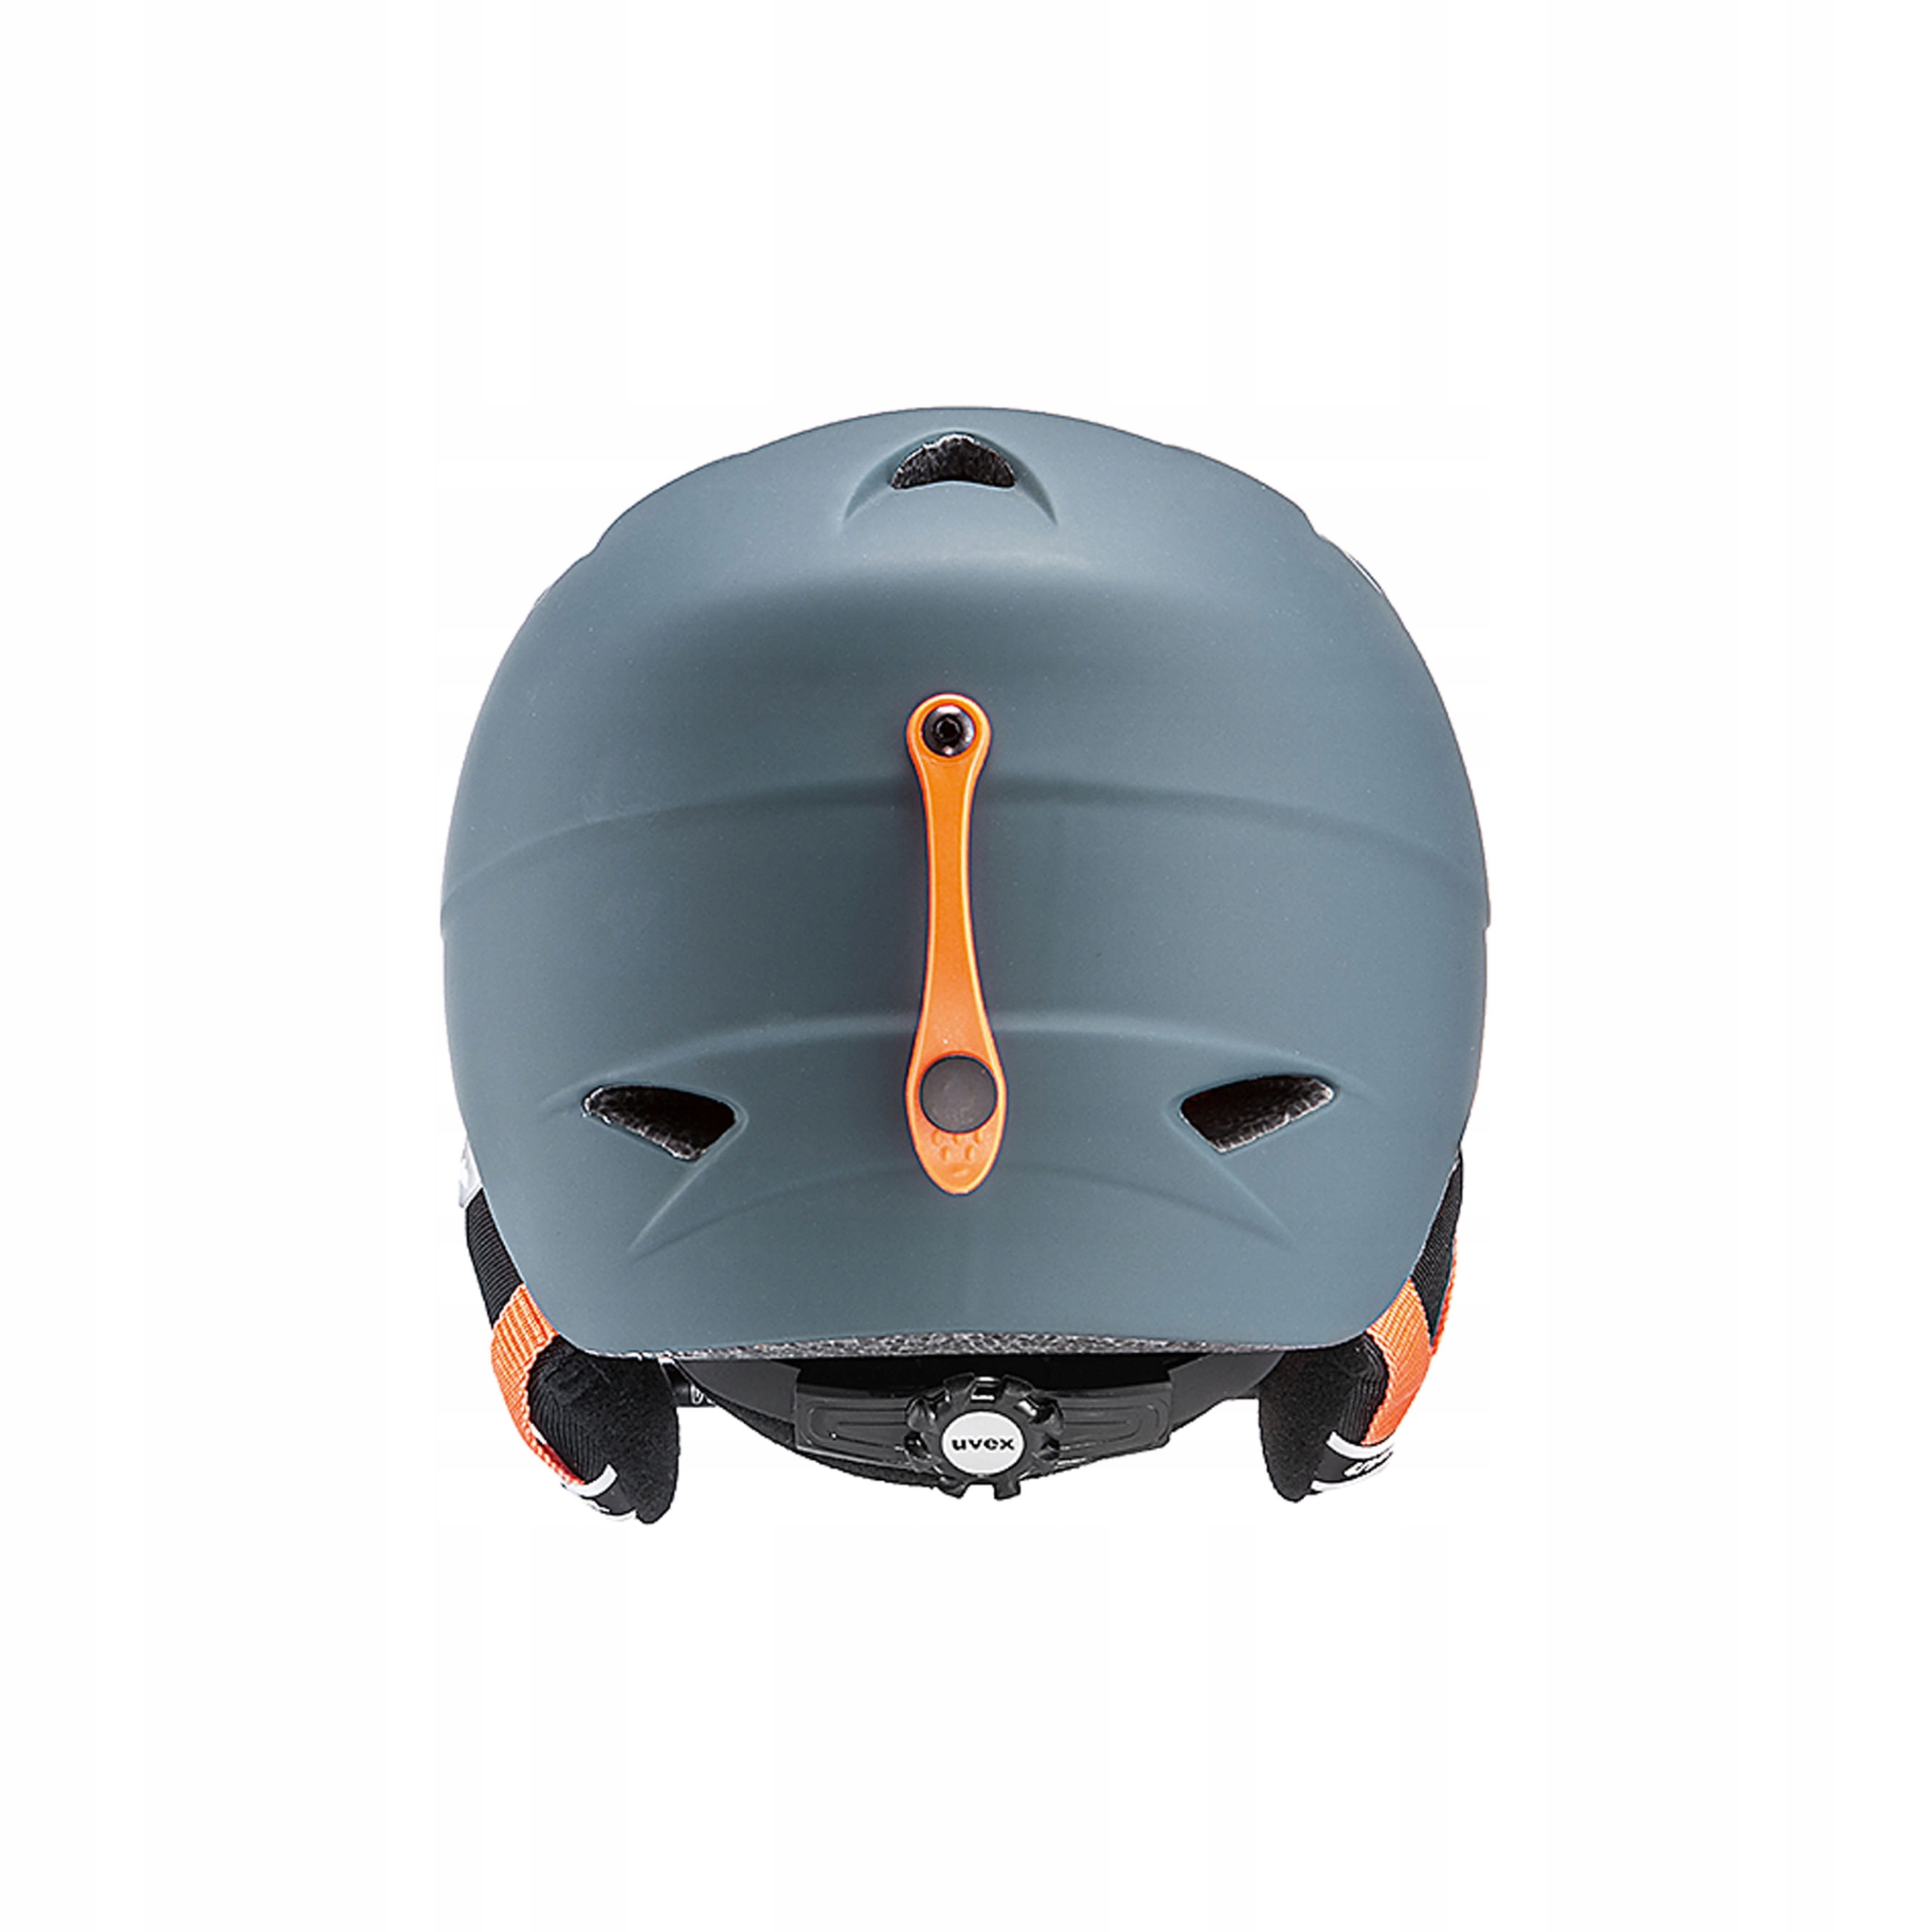 Kask dla dzieci Uvex - Airwing PRO 2 Apple Green M - 7621067667 ... 0ef1a13e497